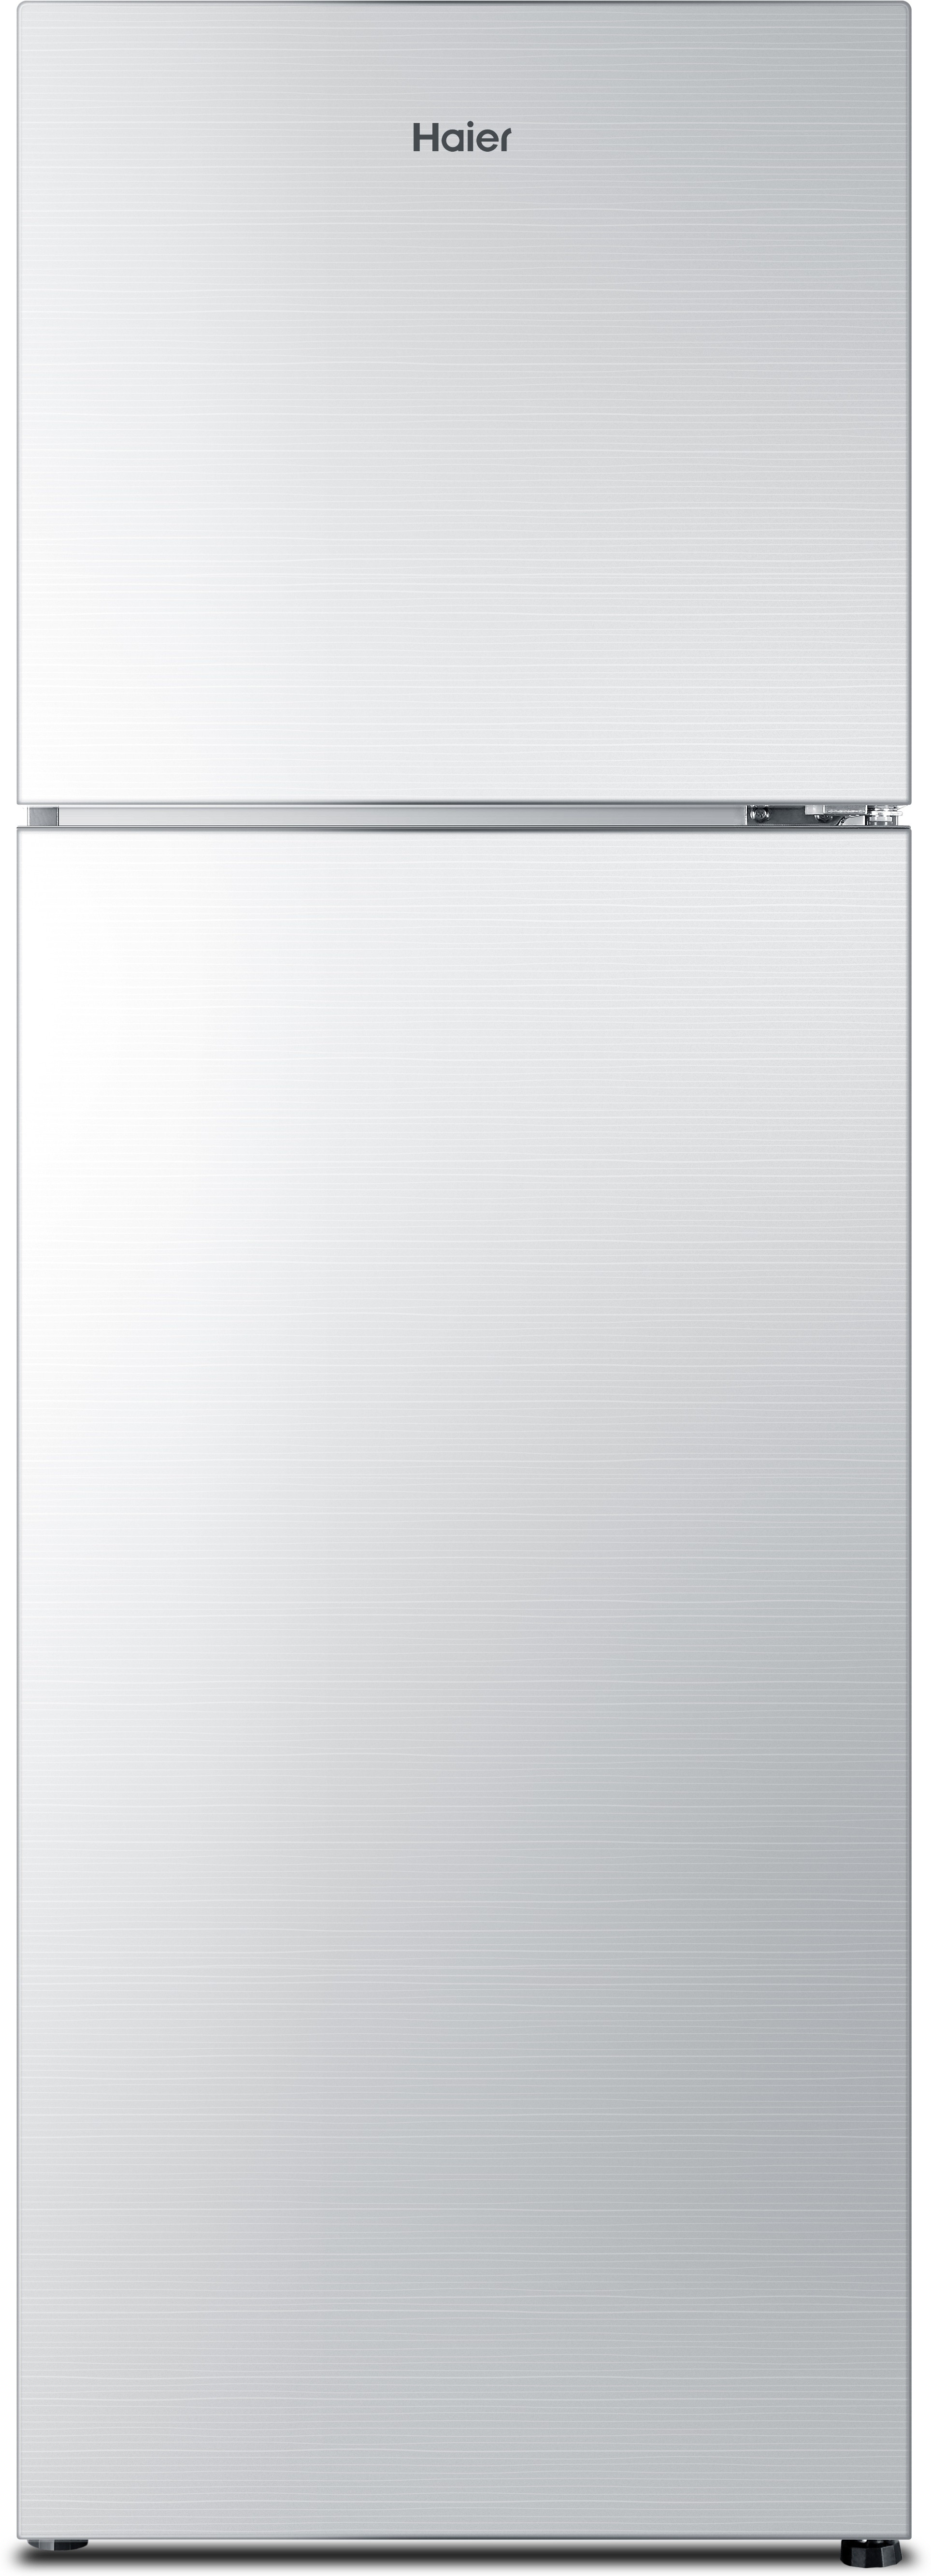 68dbc802878 HAIER HRF 2674PSG 247Ltr Double Door Refrigerator Price in India 20 ...